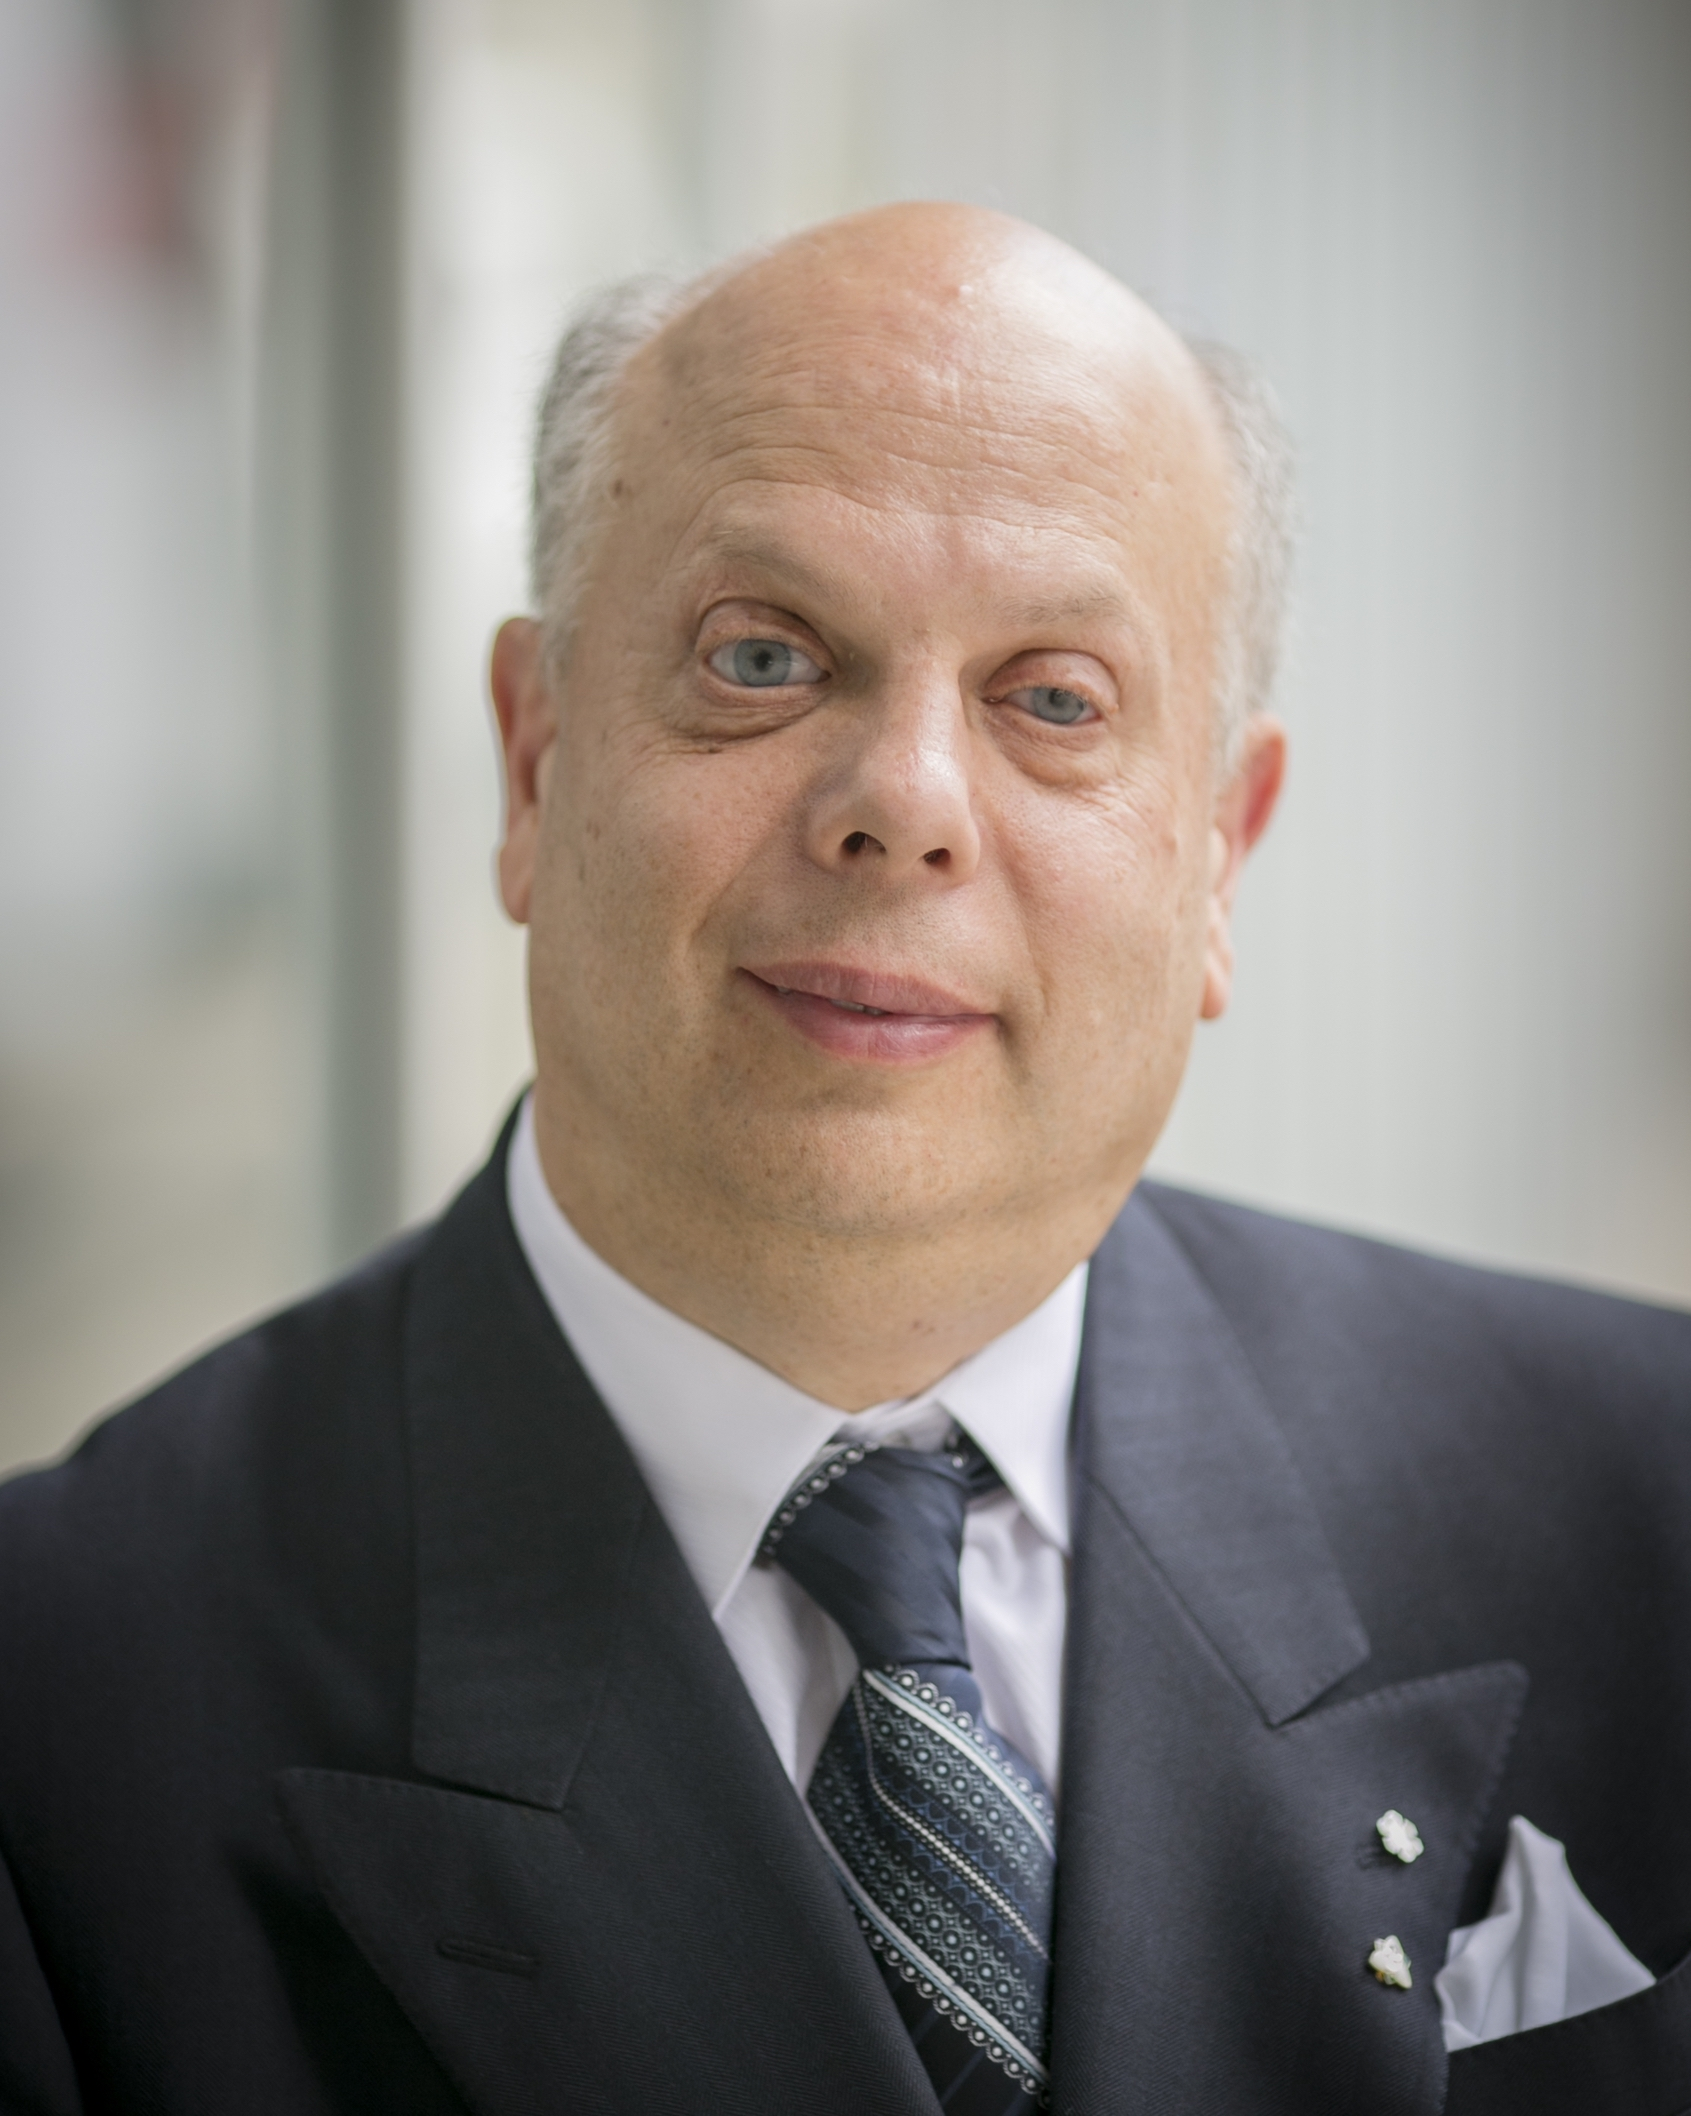 Image shows David Lepofsky in a suit.